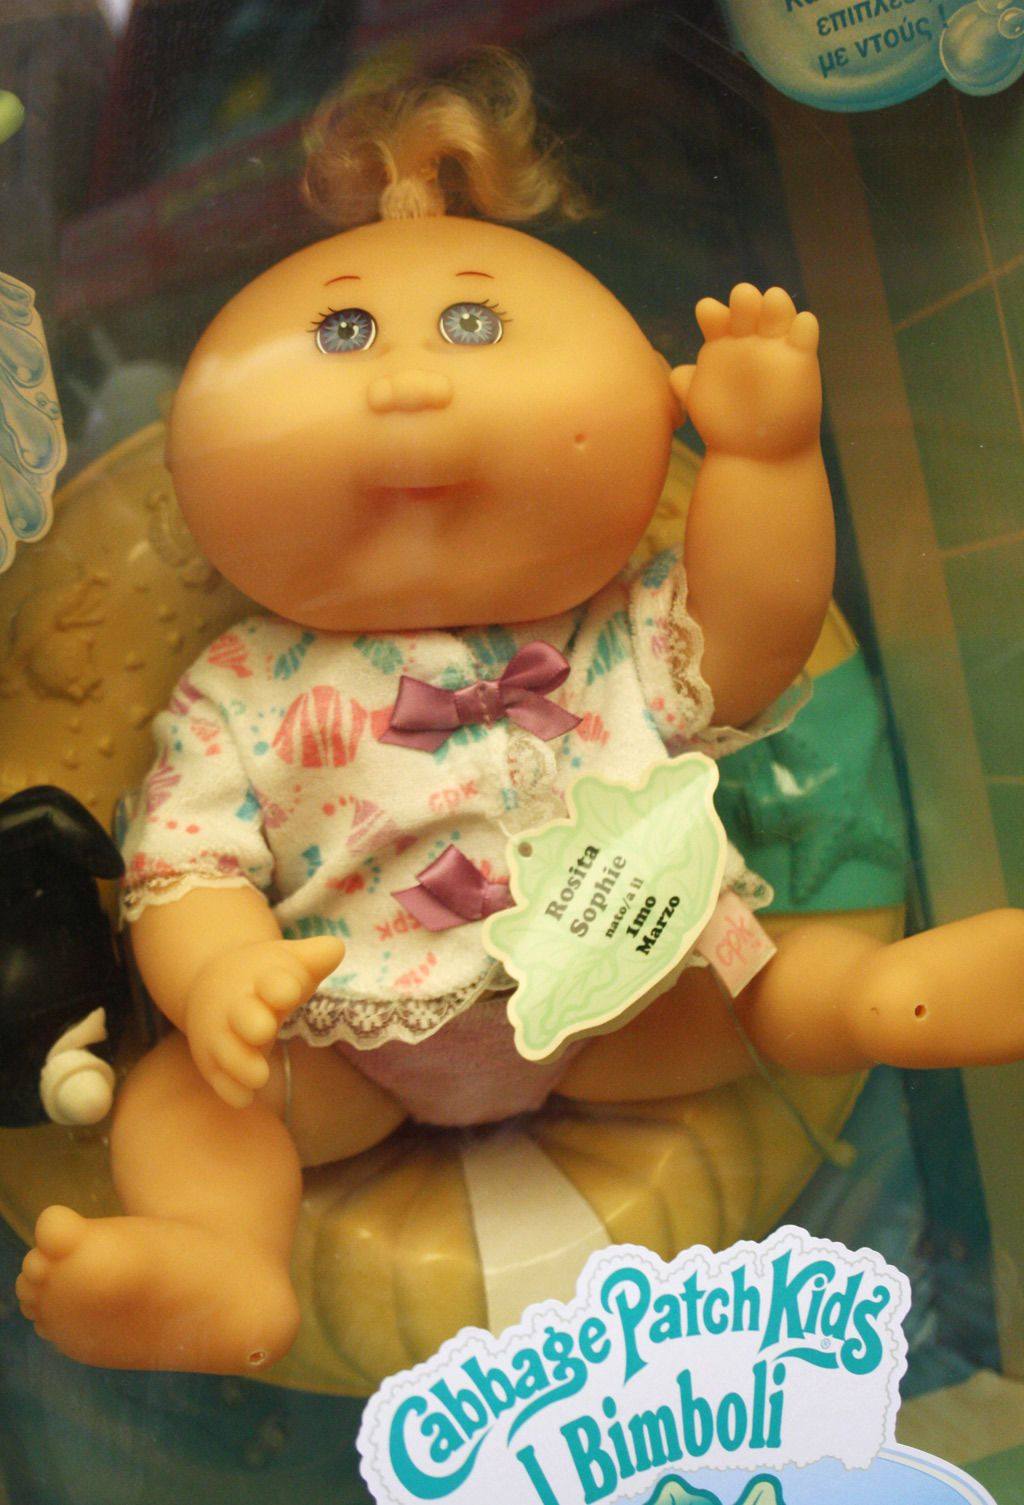 Rare Vintage 1995 Cabbage Patch Kids Bath Baby Doll Rosita Mattel New Sealed Cabbage Patch Kids Patch Kids Cabbage Patch Babies